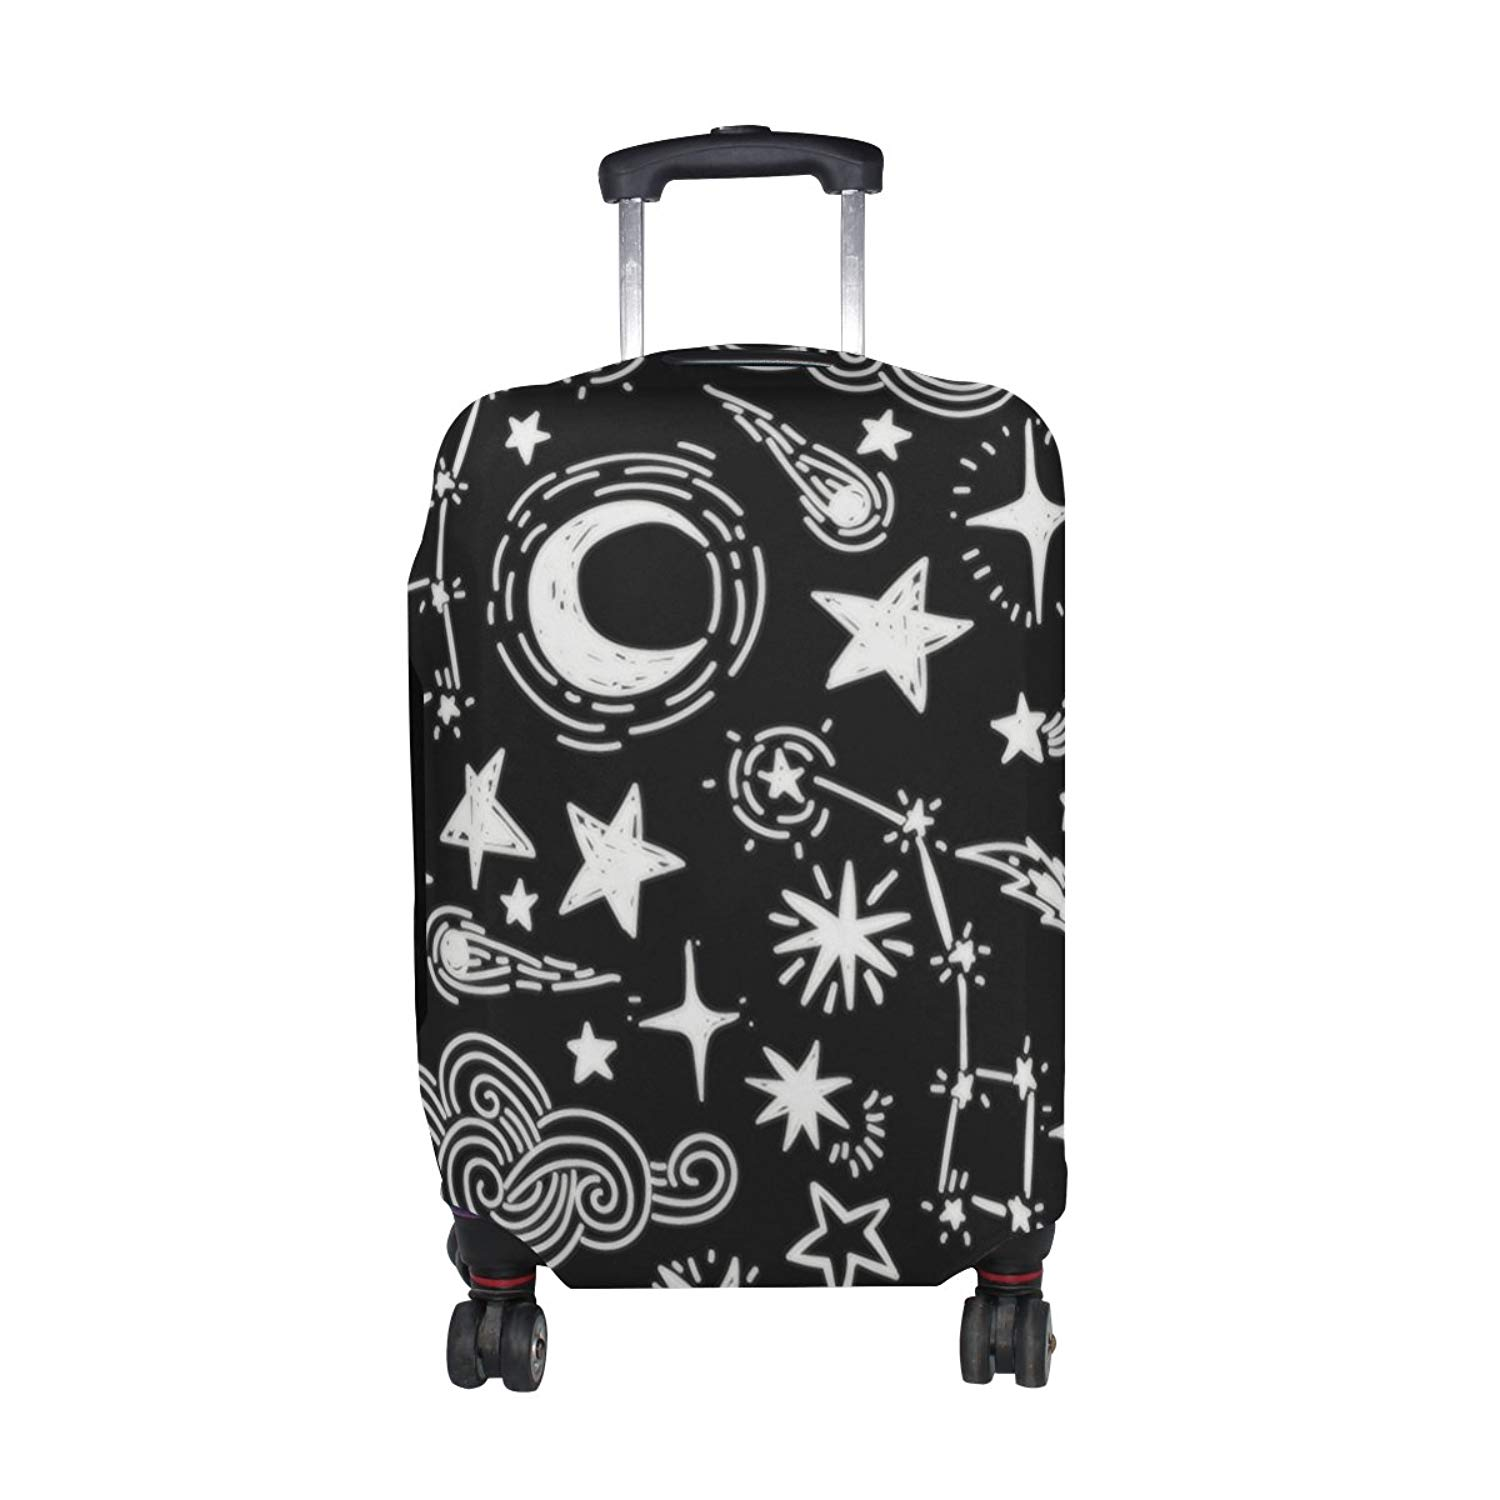 Multicolored Palm Leaves Travel Luggage Protector Case Suitcase Protector For Man/&Woman Fits 18-32 Inch Luggage